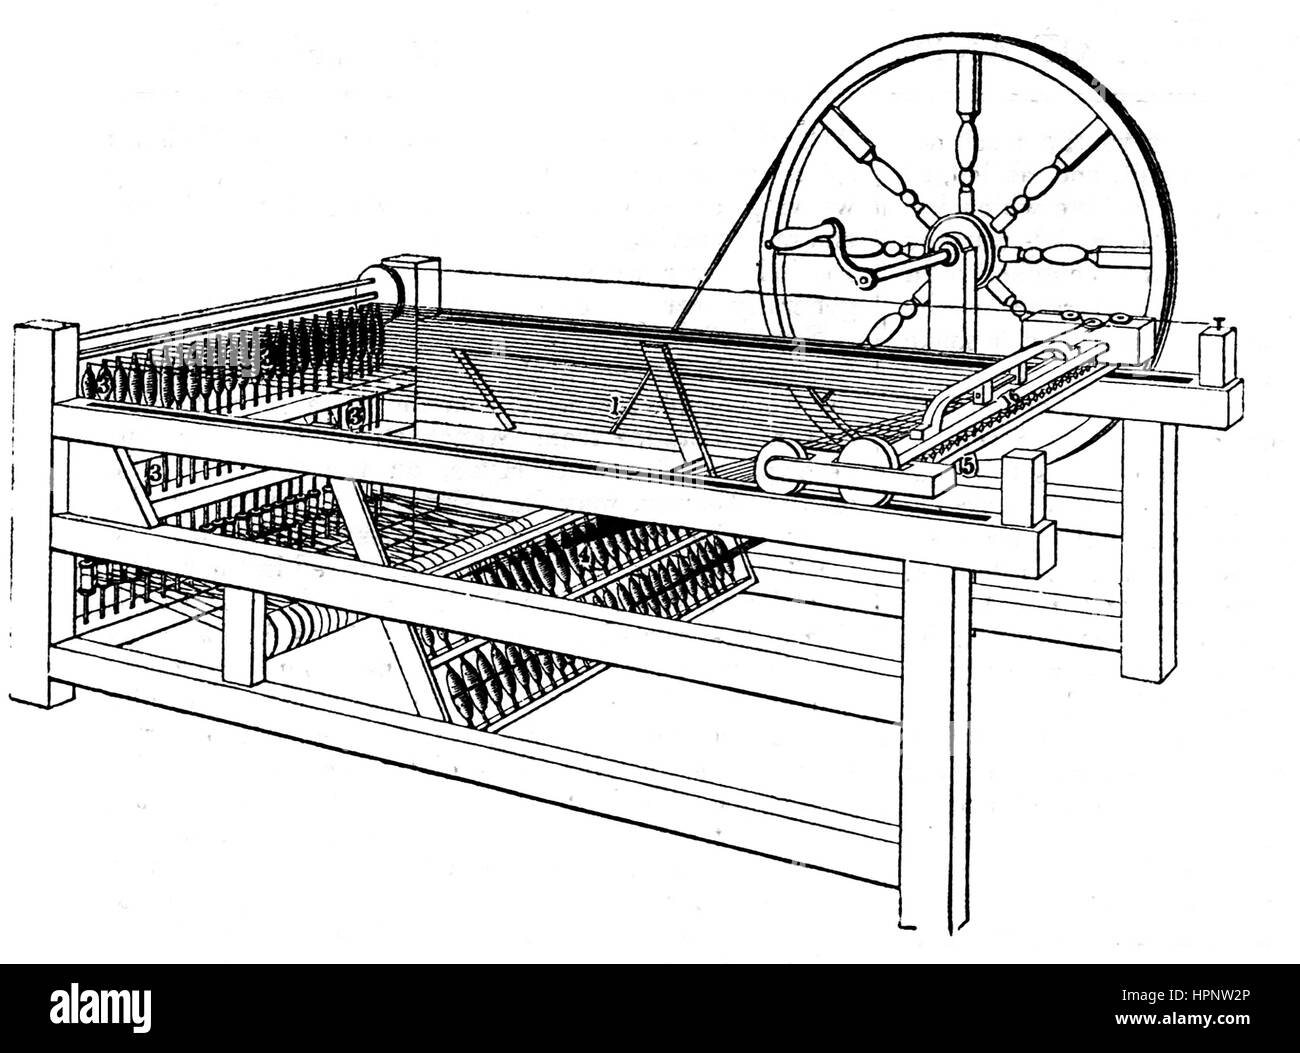 JAMES HARGREAVES (1720-1778) English inventor best known for his Spinning Jenny. Diagram of the improved version - Stock Image